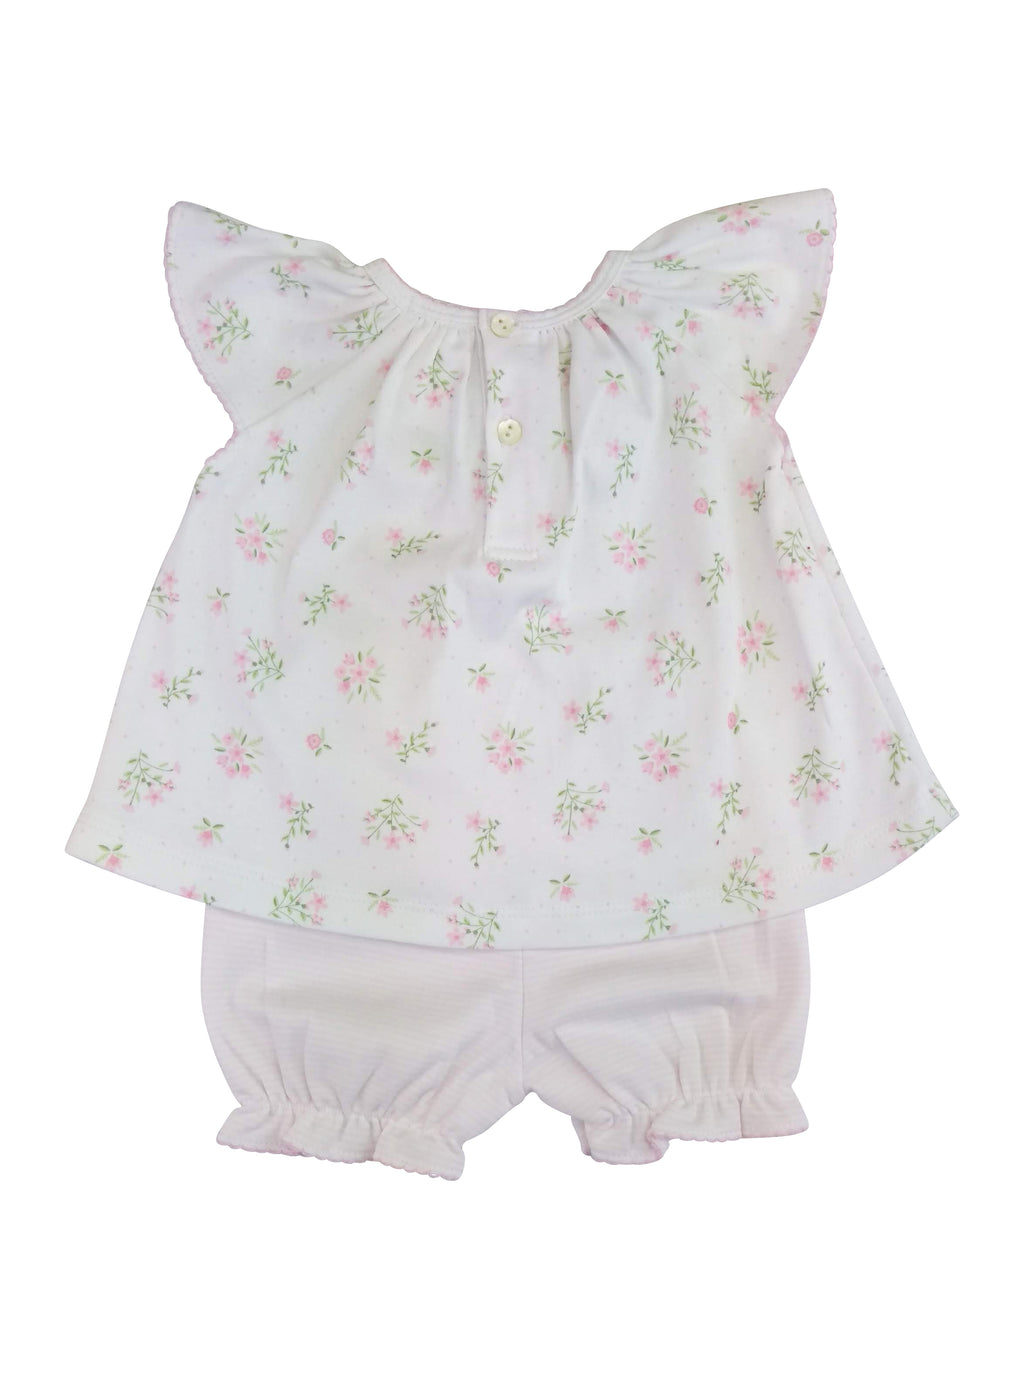 Baby Girl's Flower Print Dress Set - Little Threads Inc. Children's Clothing